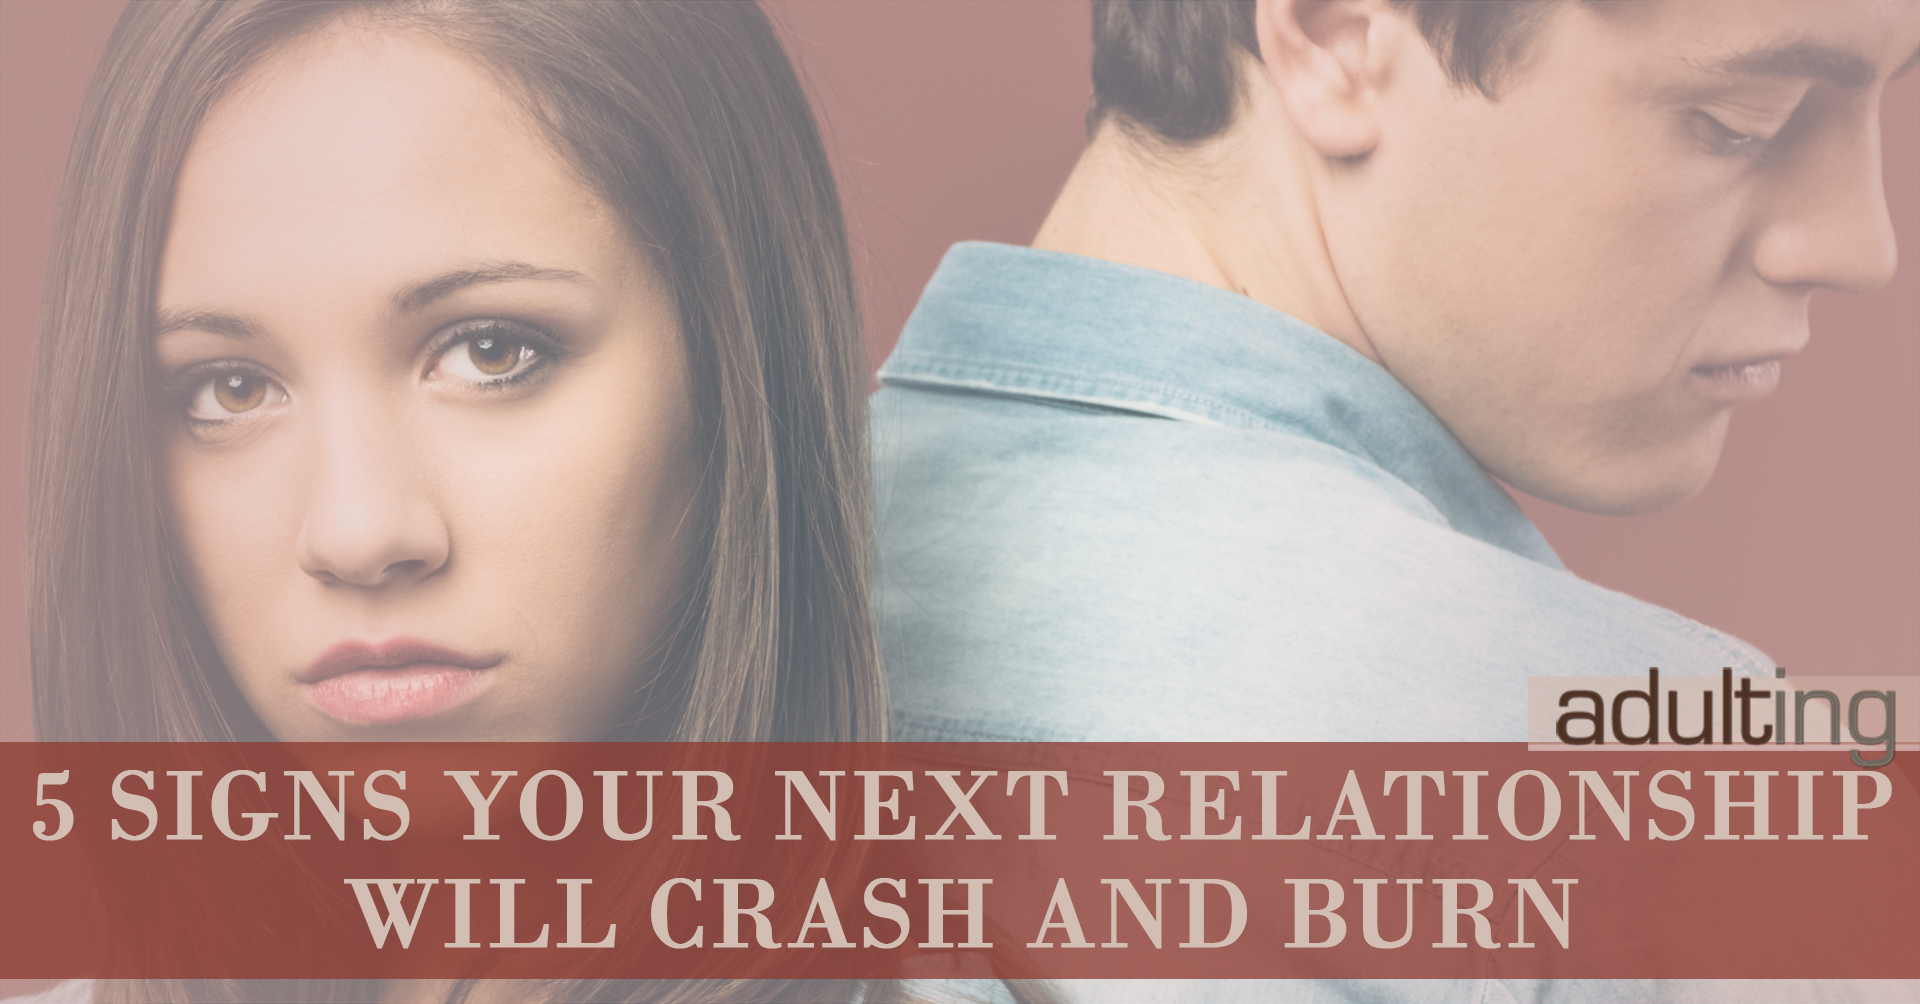 5 Signs Your Next Relationship Will Crash and Burn